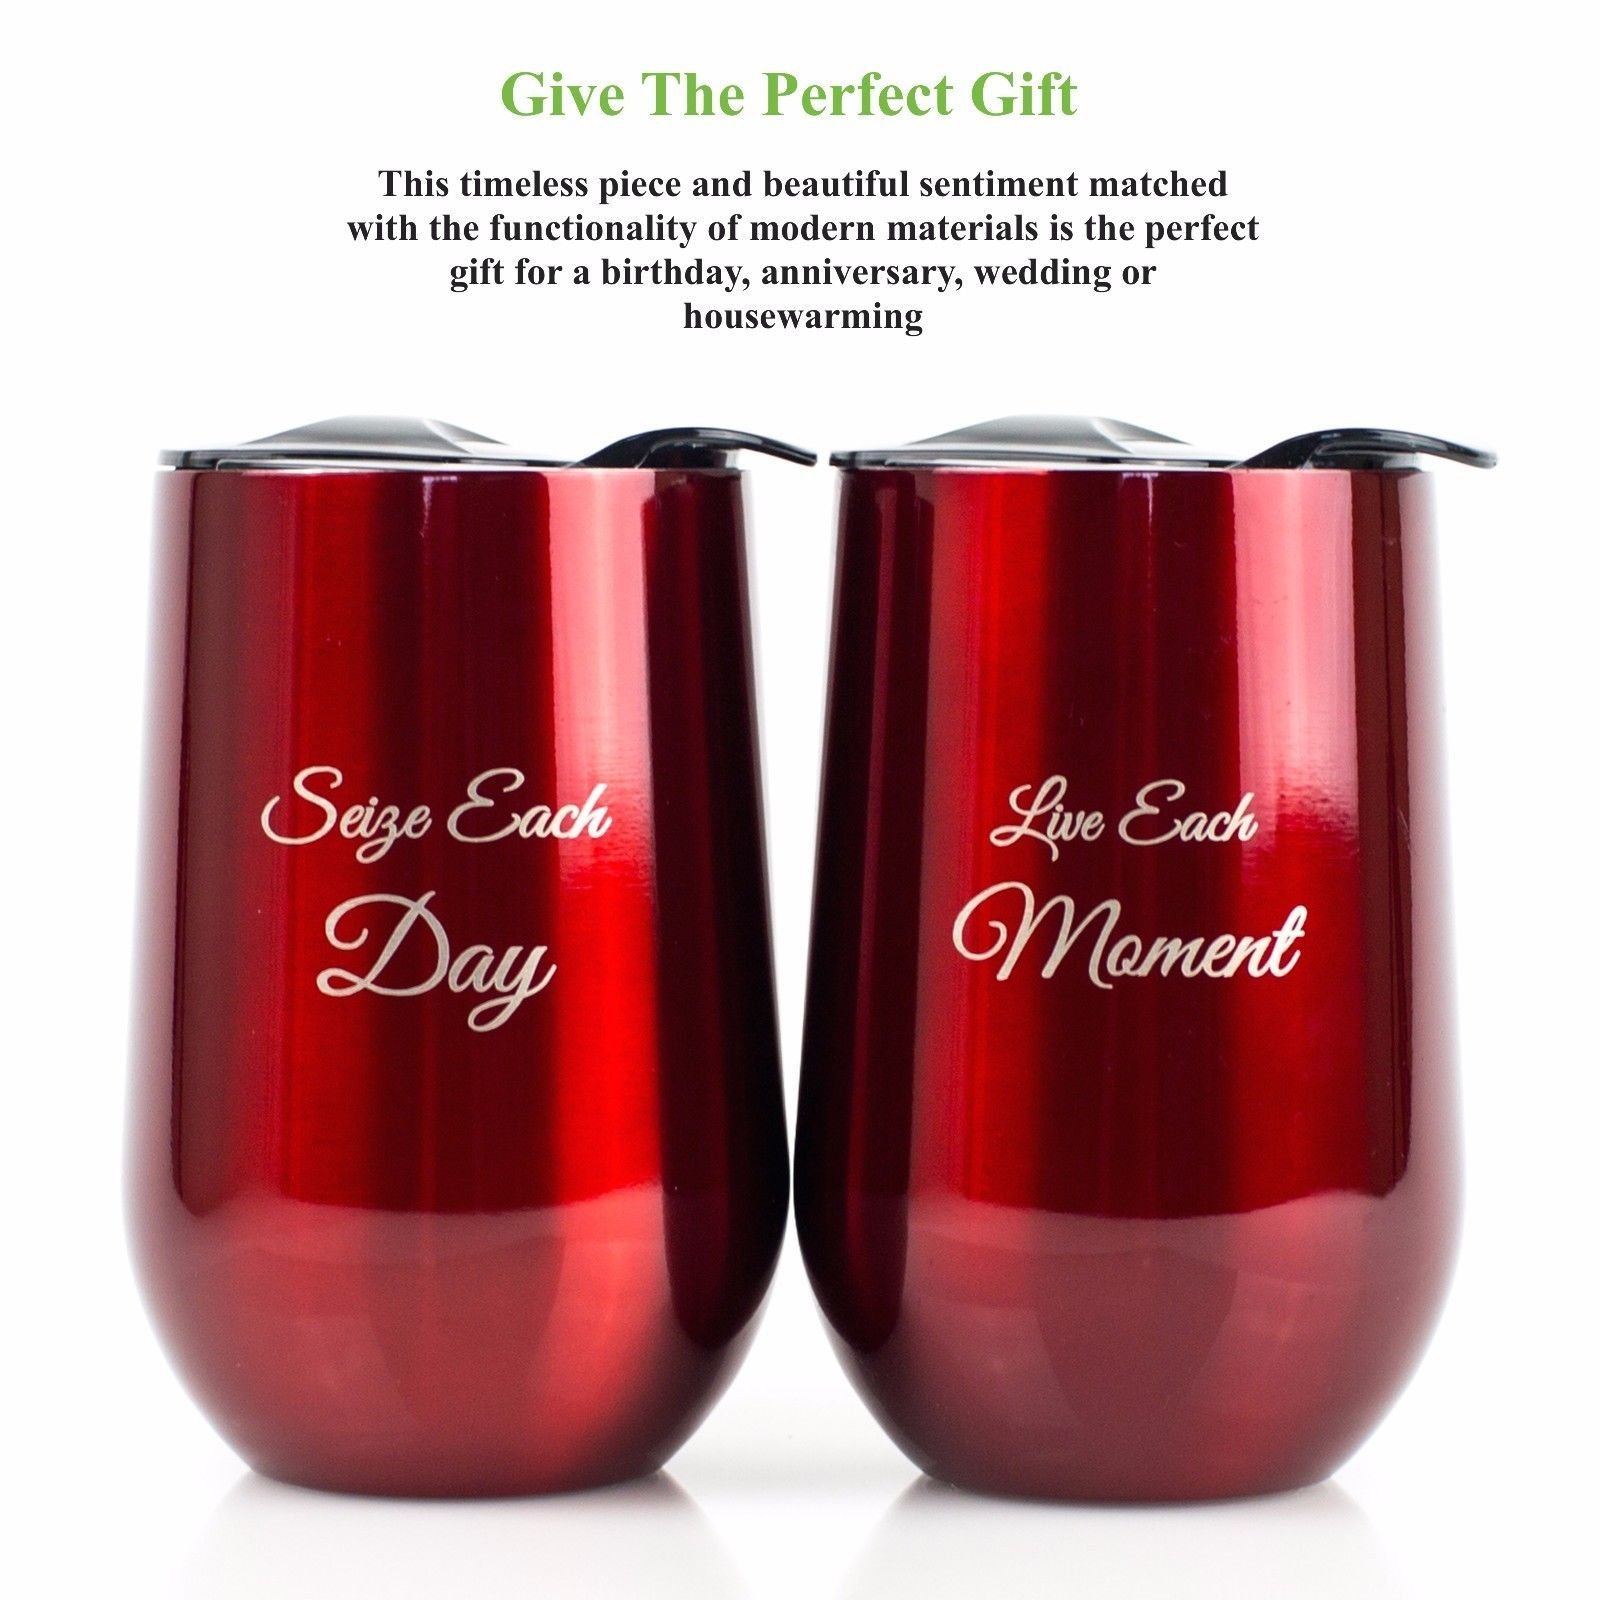 Stemless Stainless Steel Wine Glasses With Lids 16 Oz Shatterproof Set Of 2 Wine Glasses Shatterproof Stemless Wine Glasses